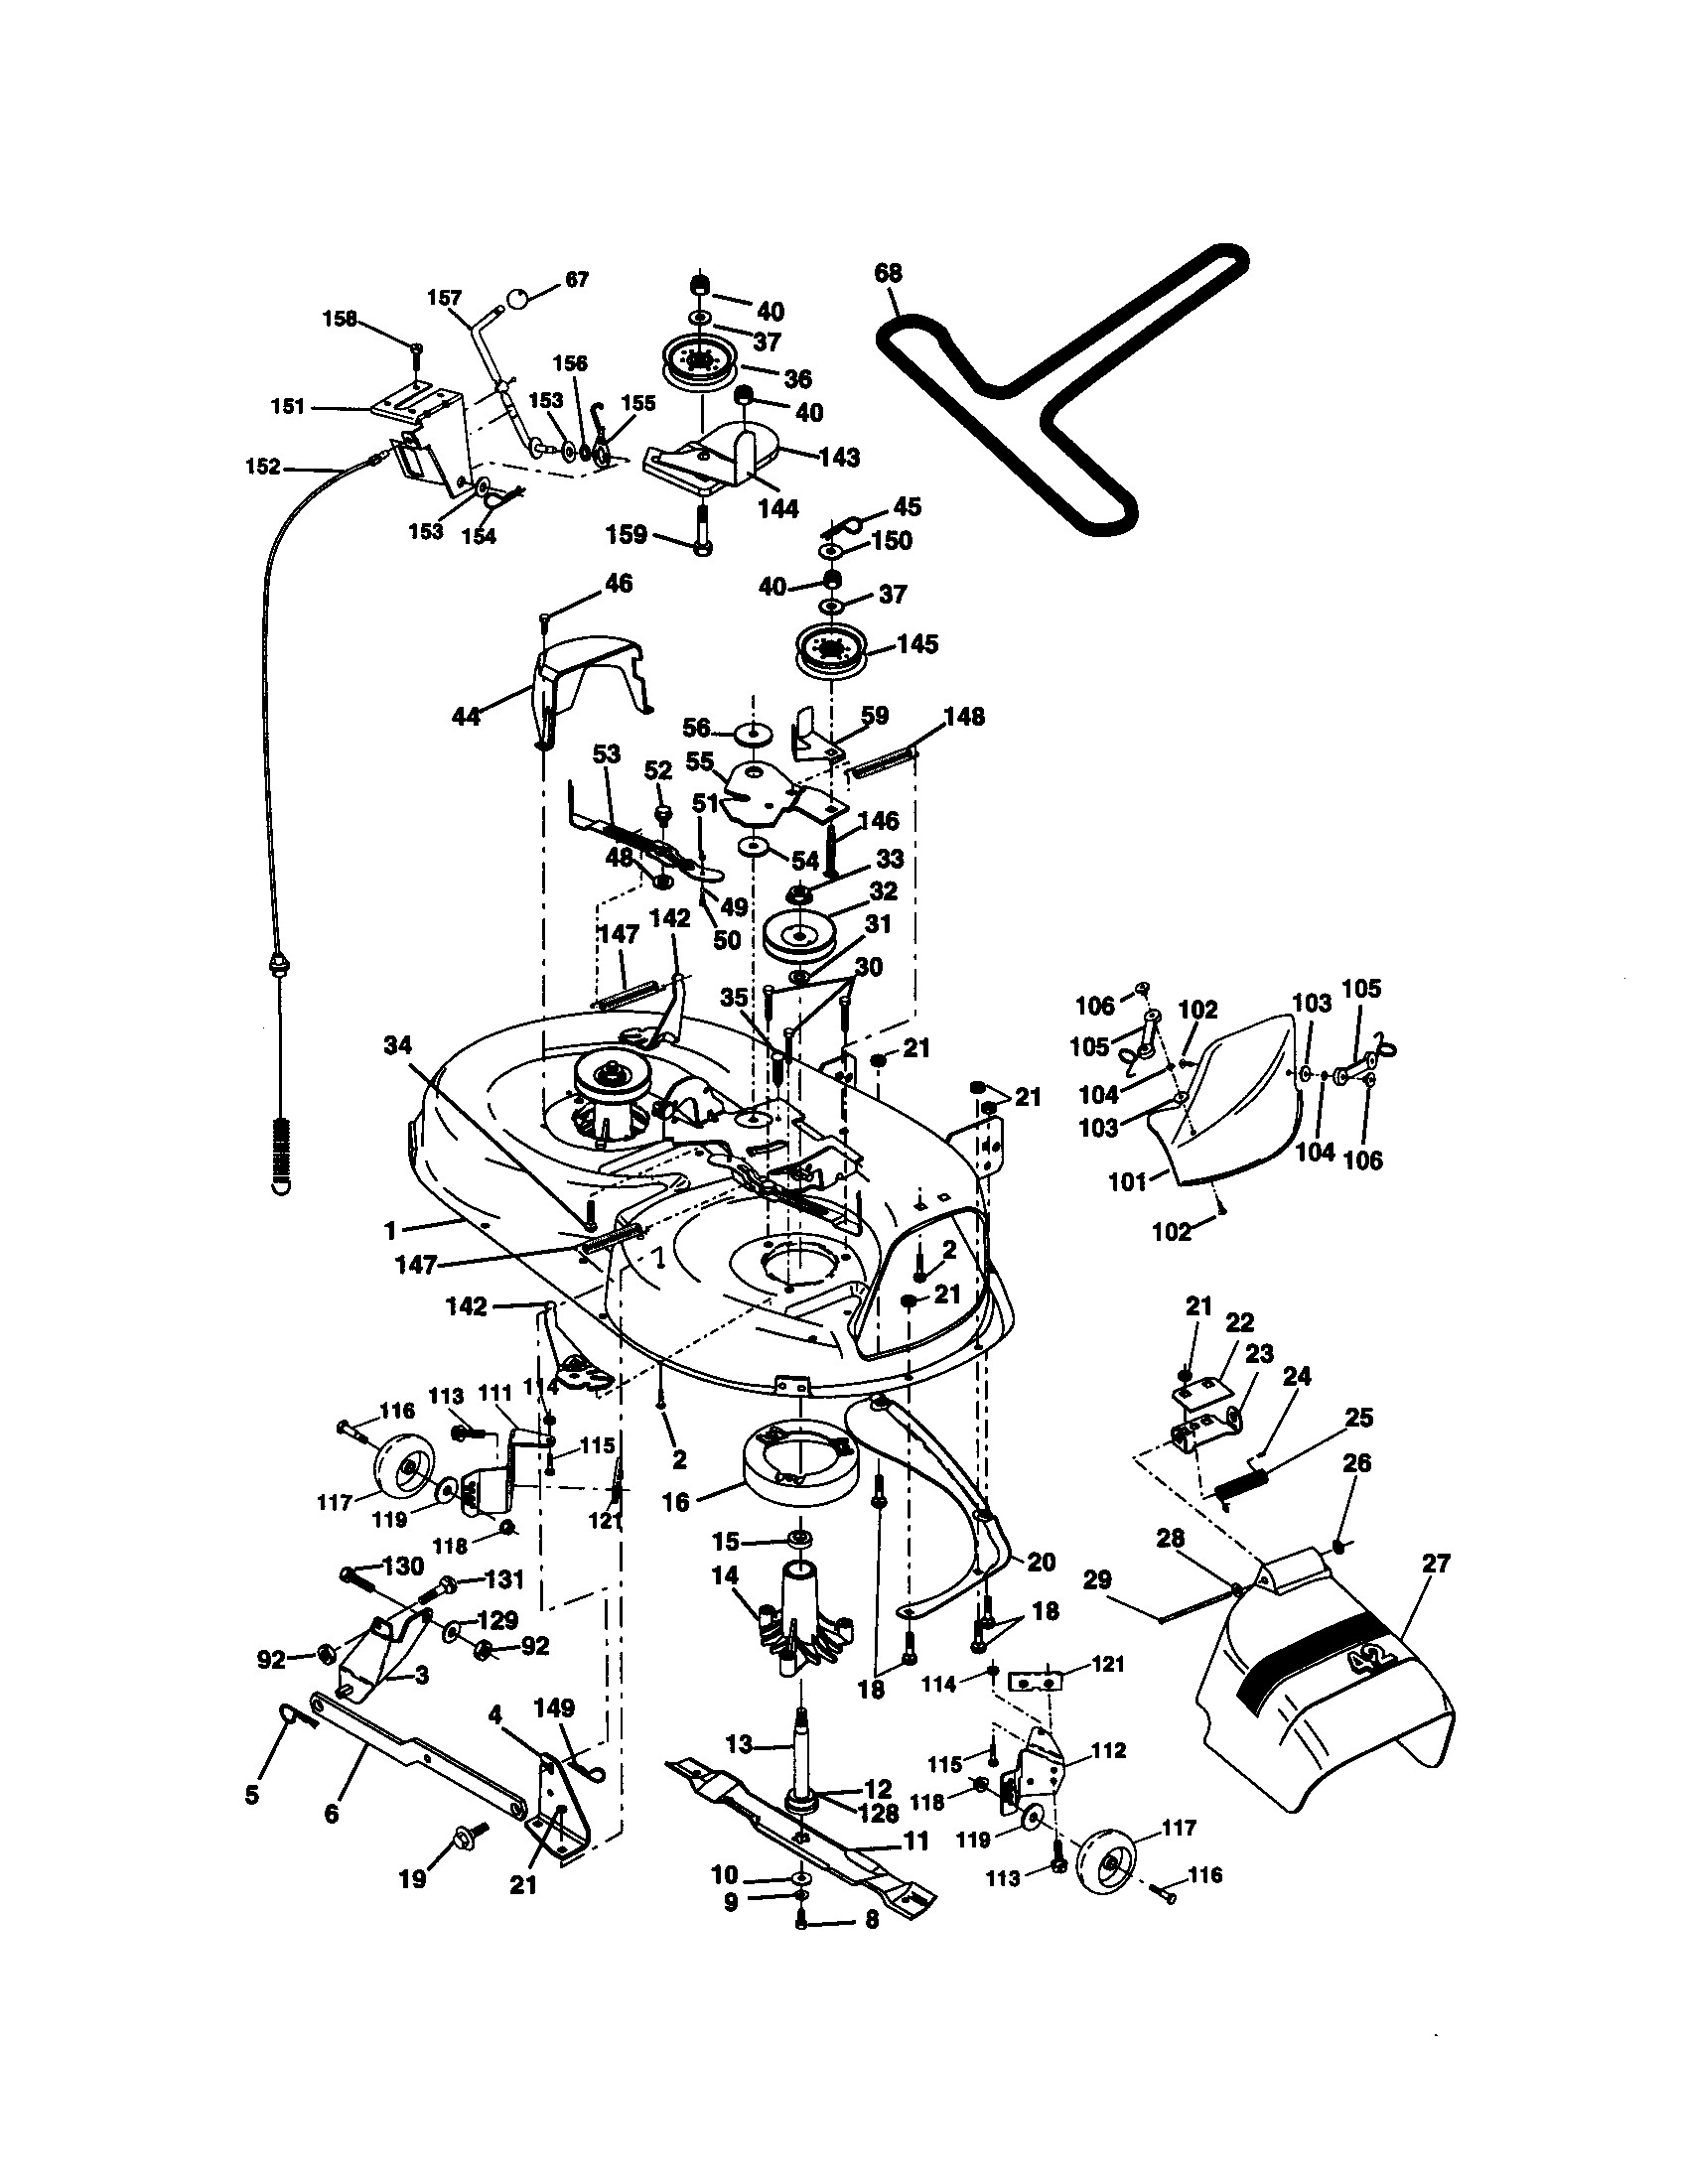 Wiring Diagram for A Craftsman Riding Mower Craftsman Model Lawn Tractor Genuine Parts Of Wiring Diagram for A Craftsman Riding Mower